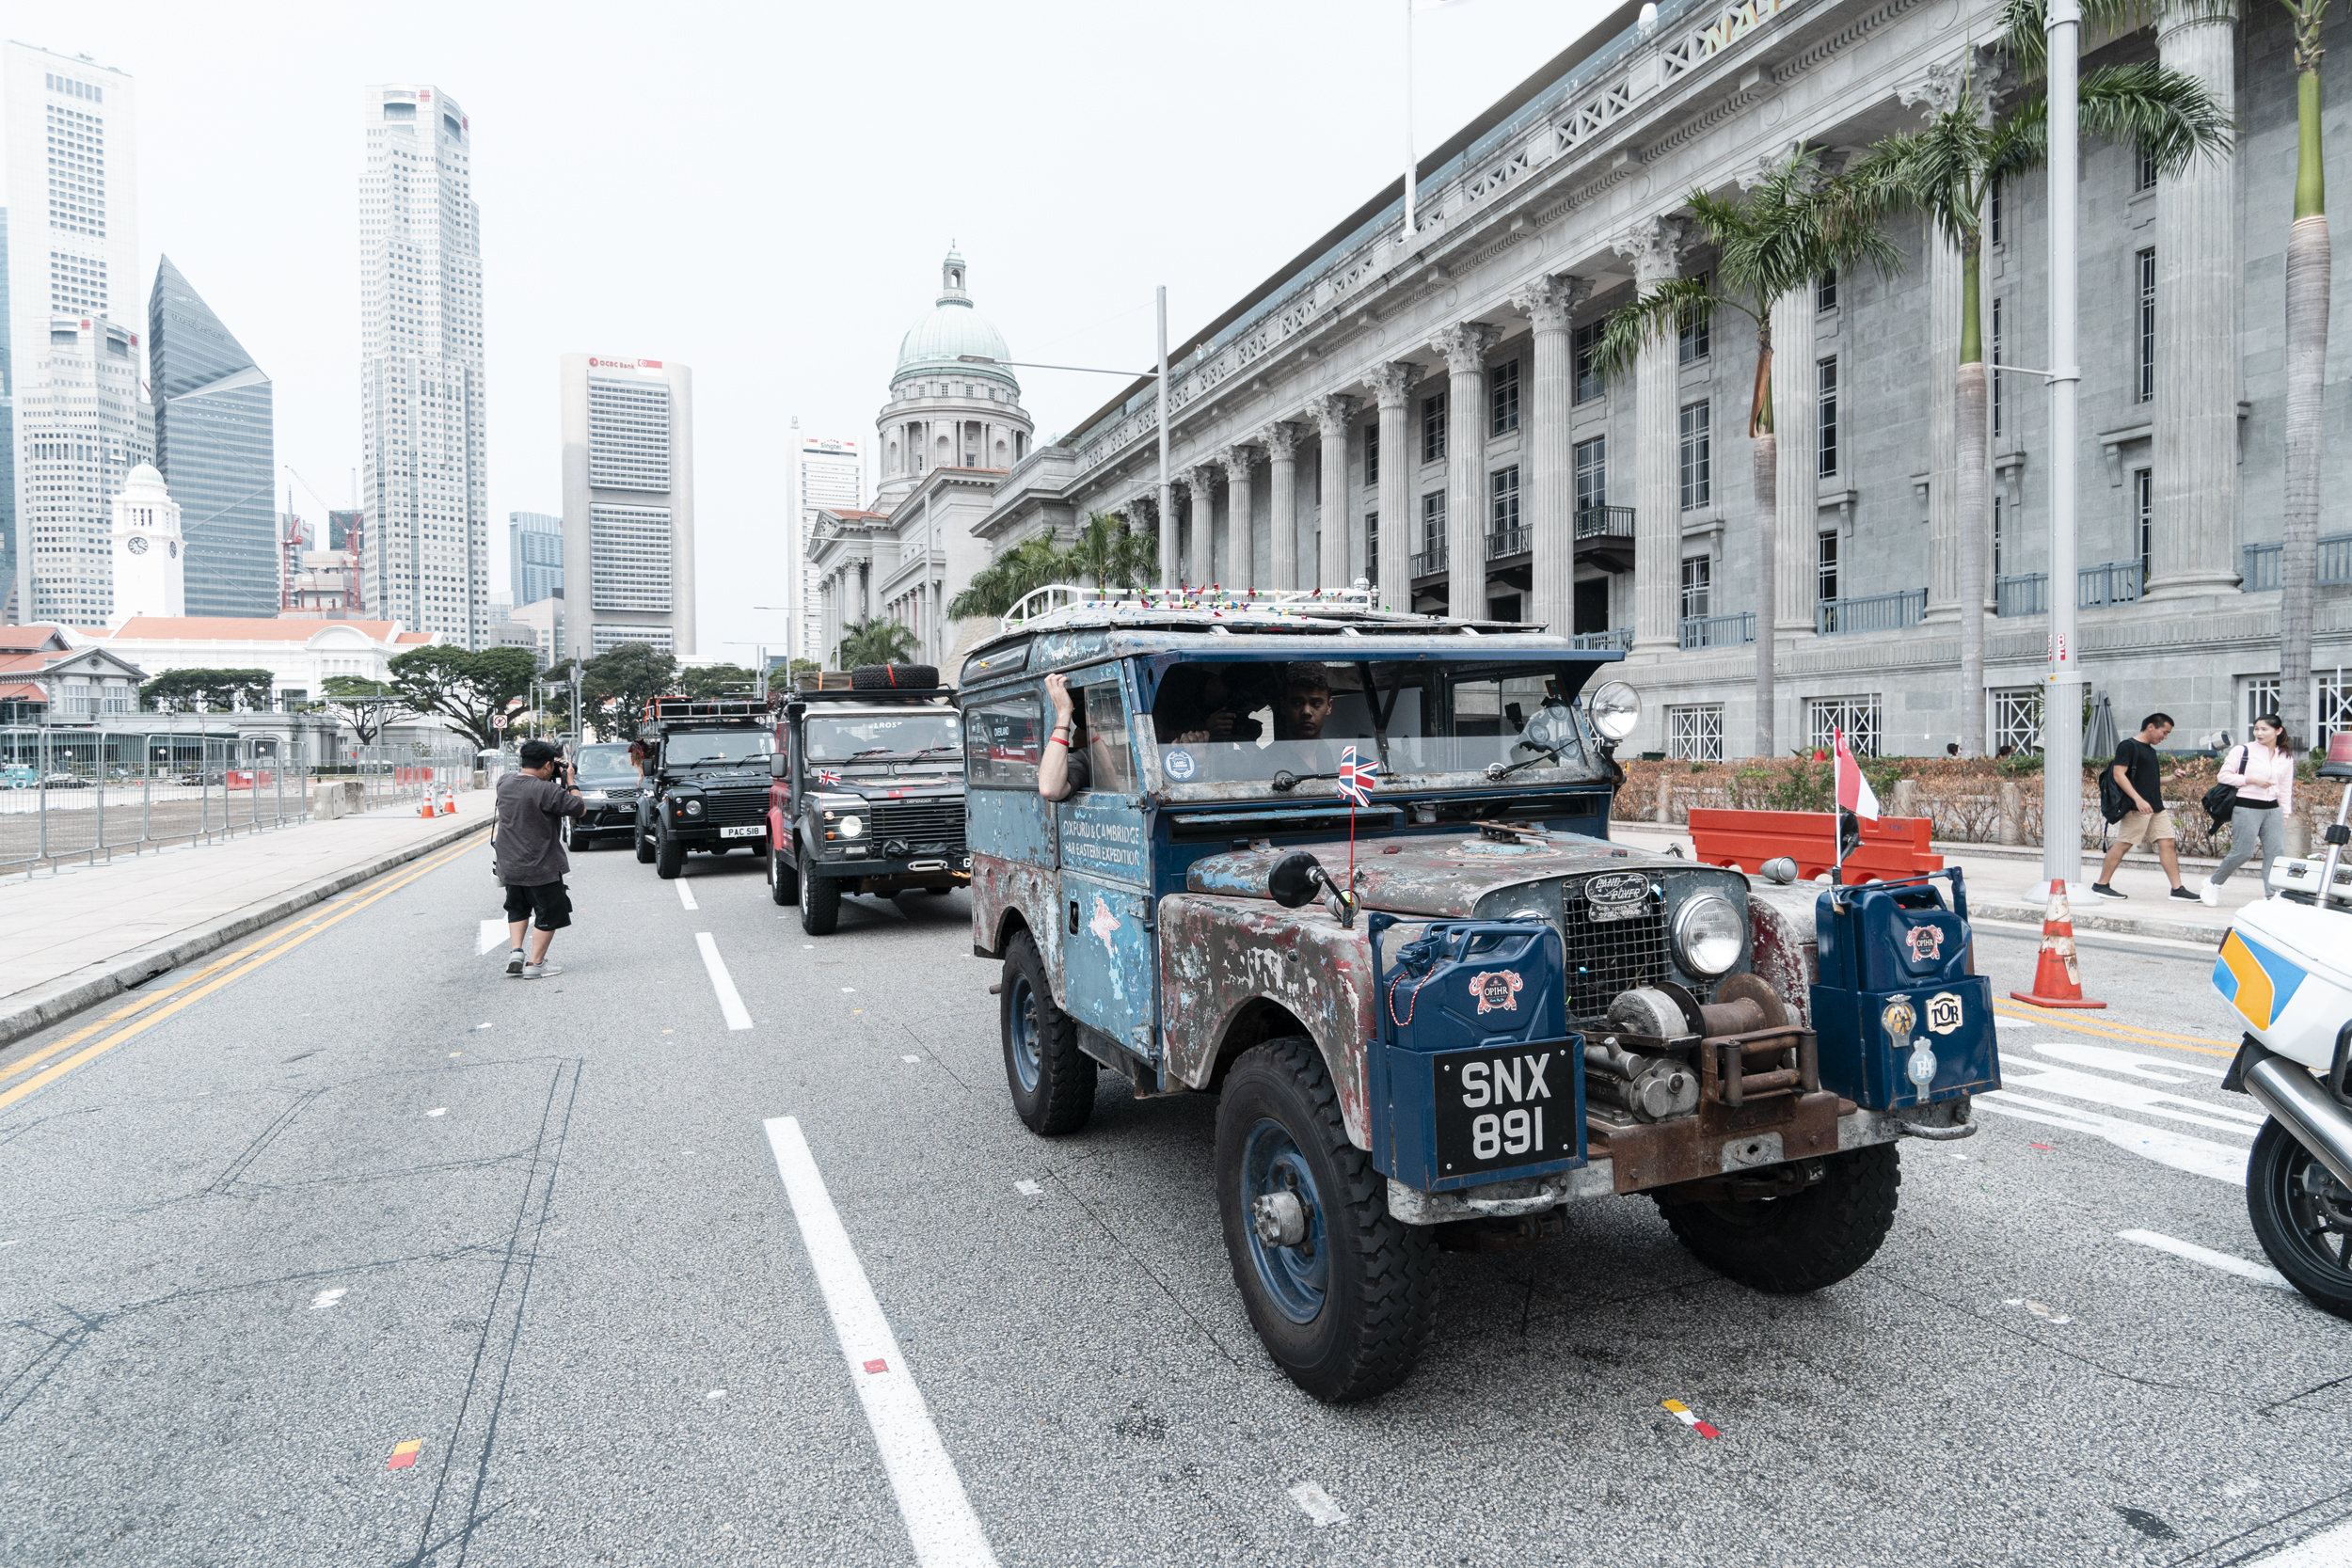 'Oxford' leads the expedition past Singapore's National Gallery during the official 'flag-off' day.